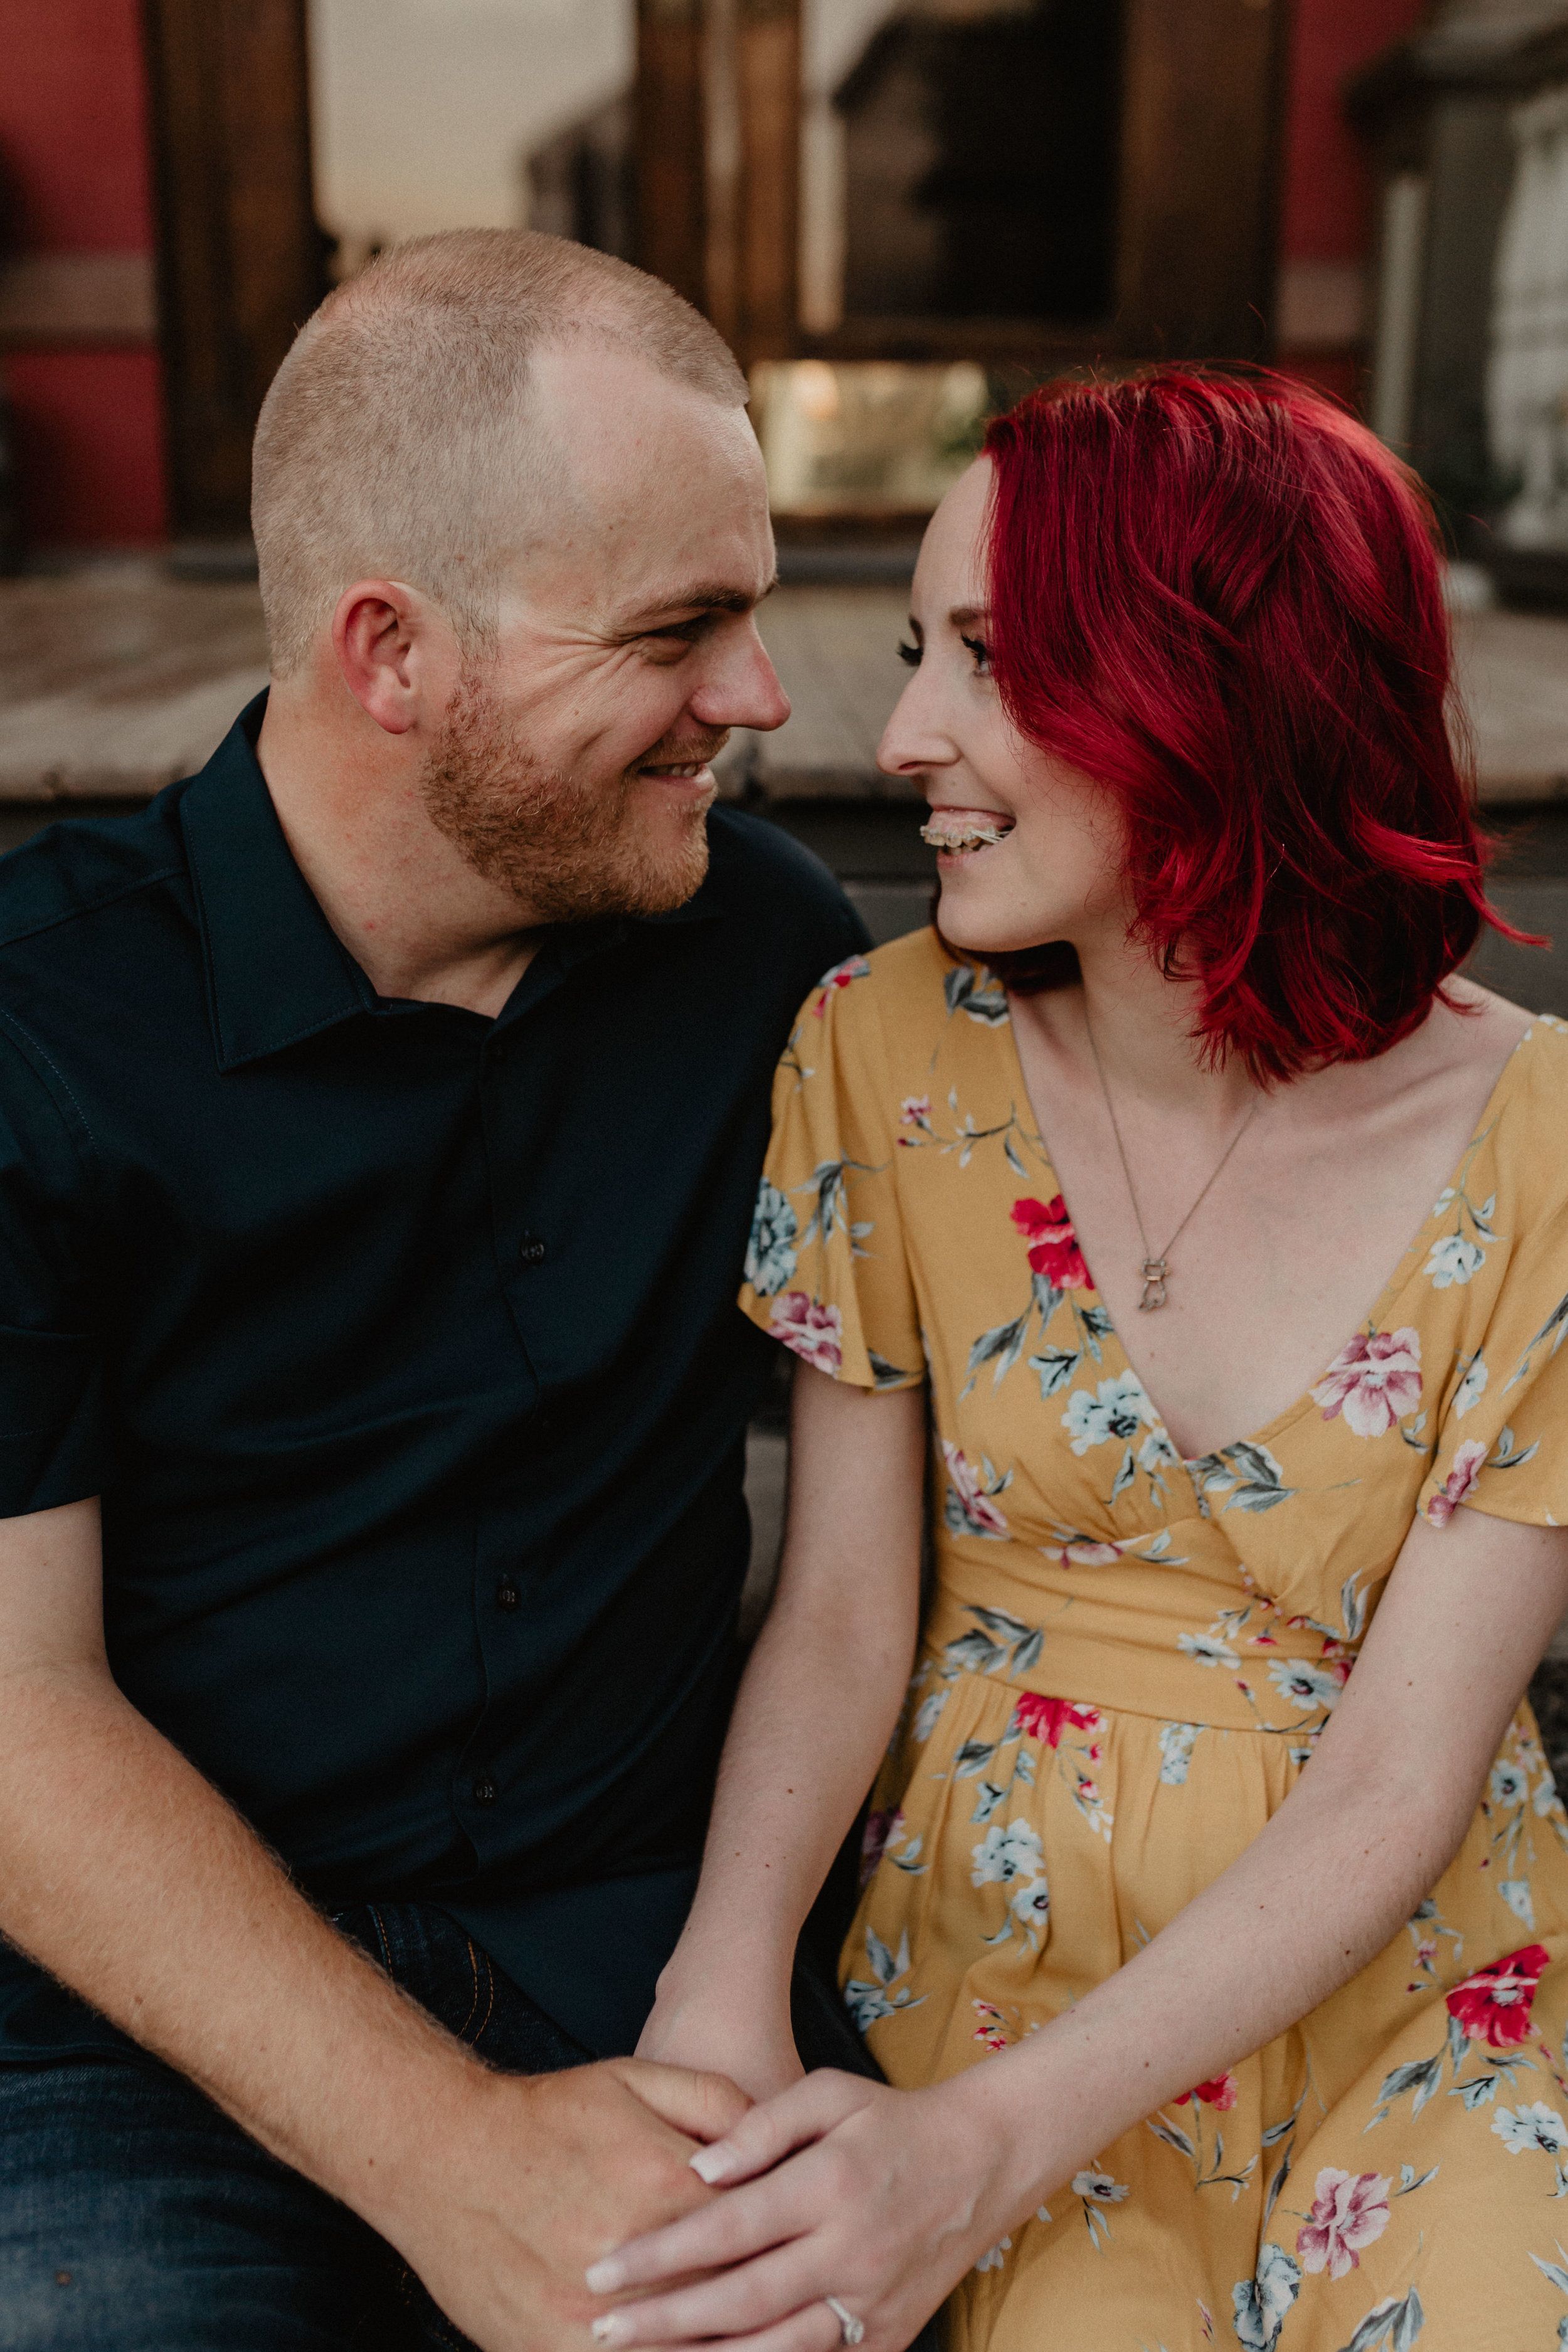 downtown-troy-engagement-session-23.jpg